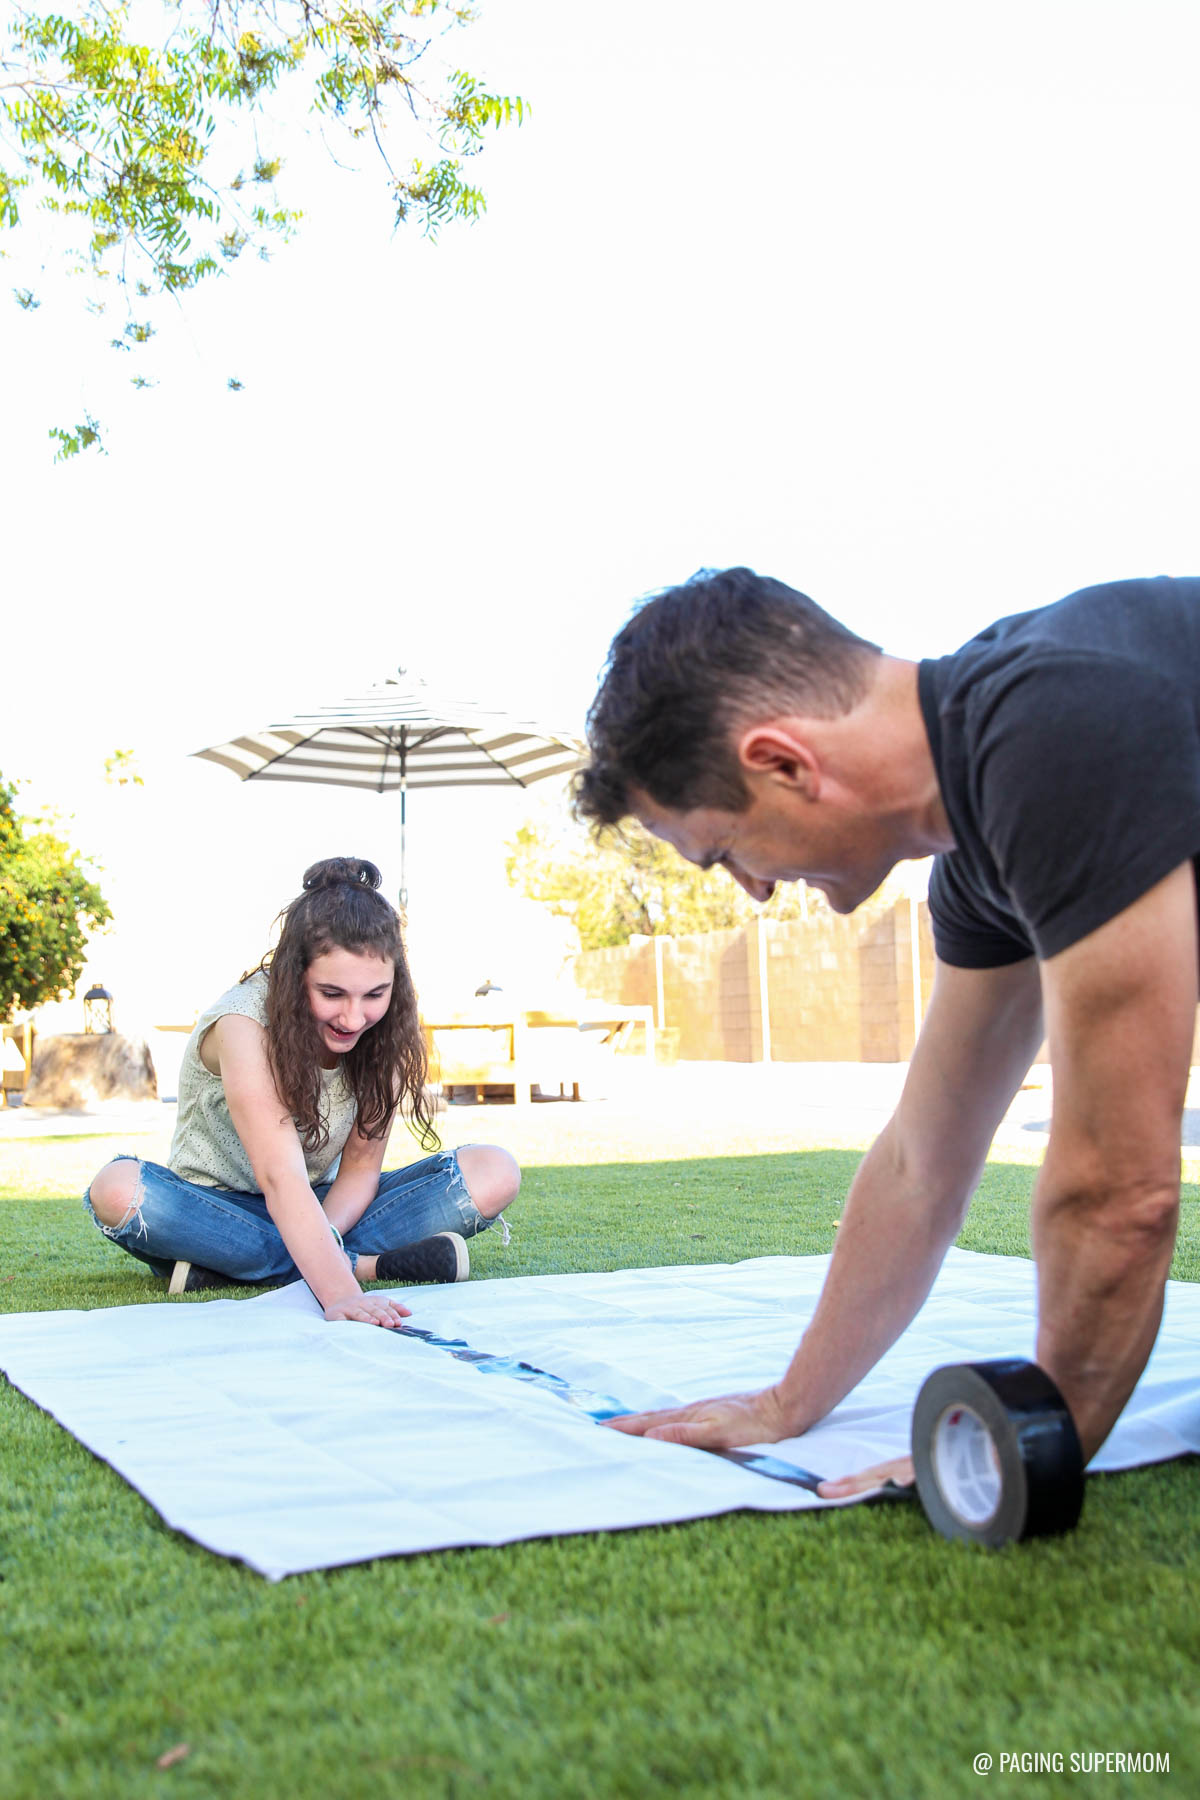 Backyard games how to make yard dominoes ring toss giant jenga taping a giant tic tac toe board diy backyard games plans from solutioingenieria Image collections